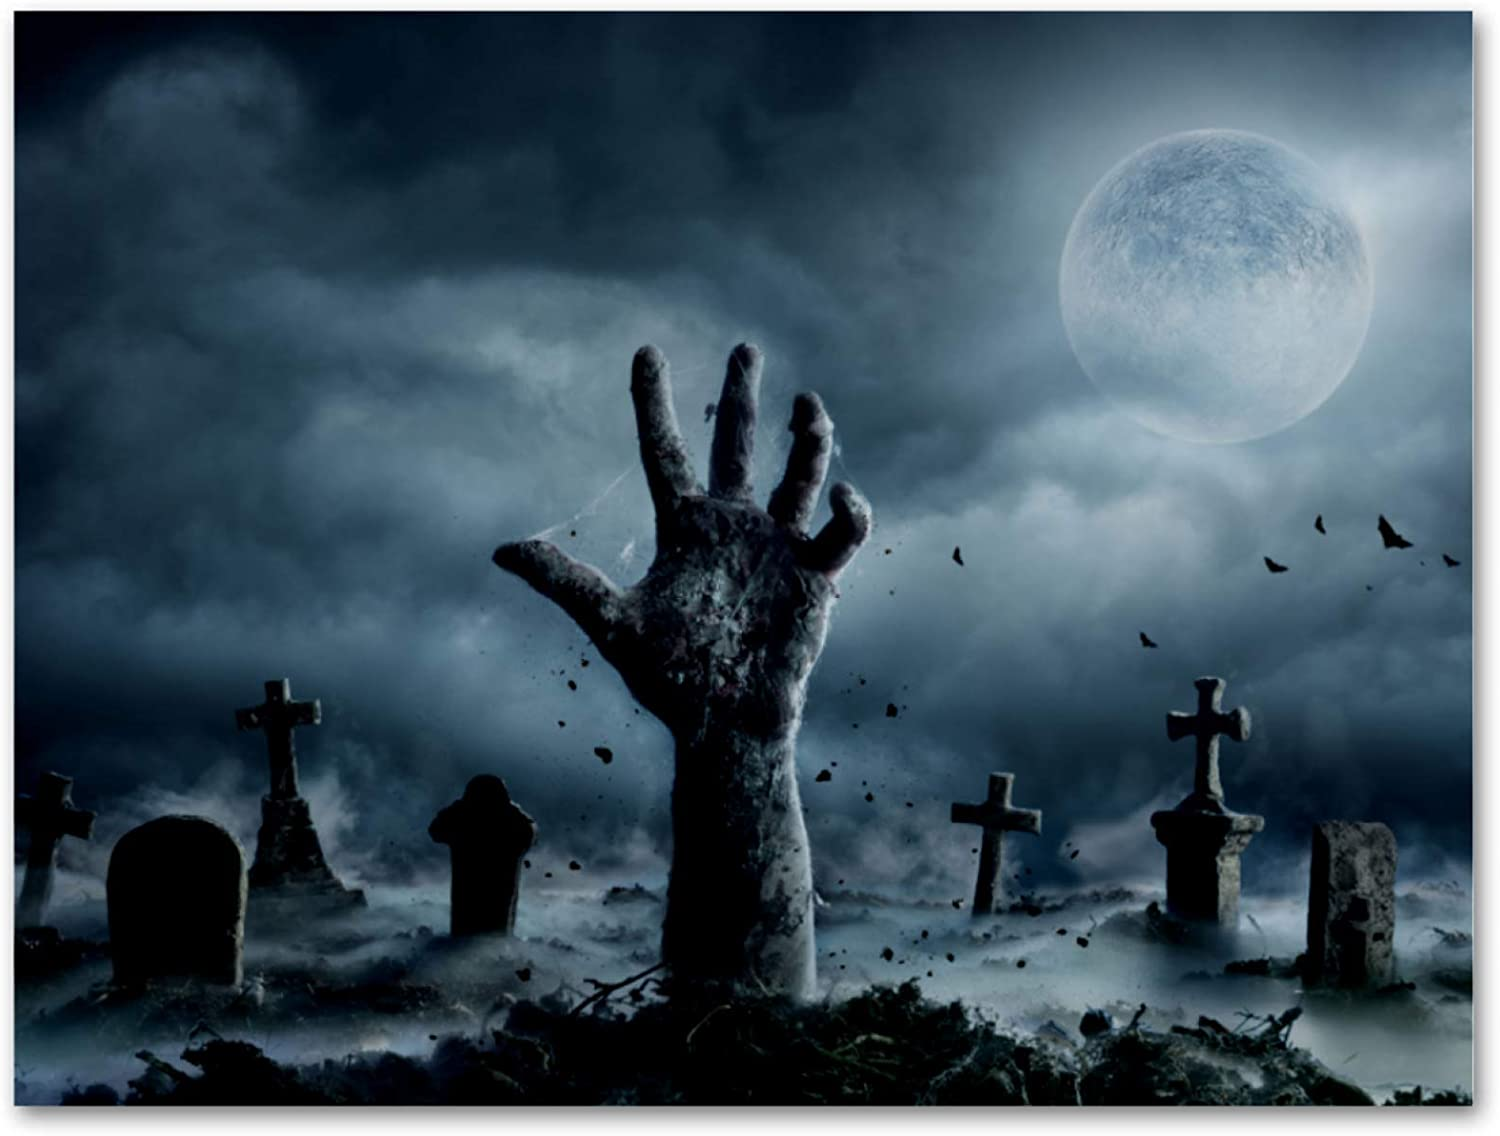 imobaby Oil Painting on Canvas Zombie Hand Rising Out Of Graveyard In Spooky Night Prints with Wooden Frame for Bedroom Home Living Room Office Modern Wall Art Decor, 11.8x17.7 in